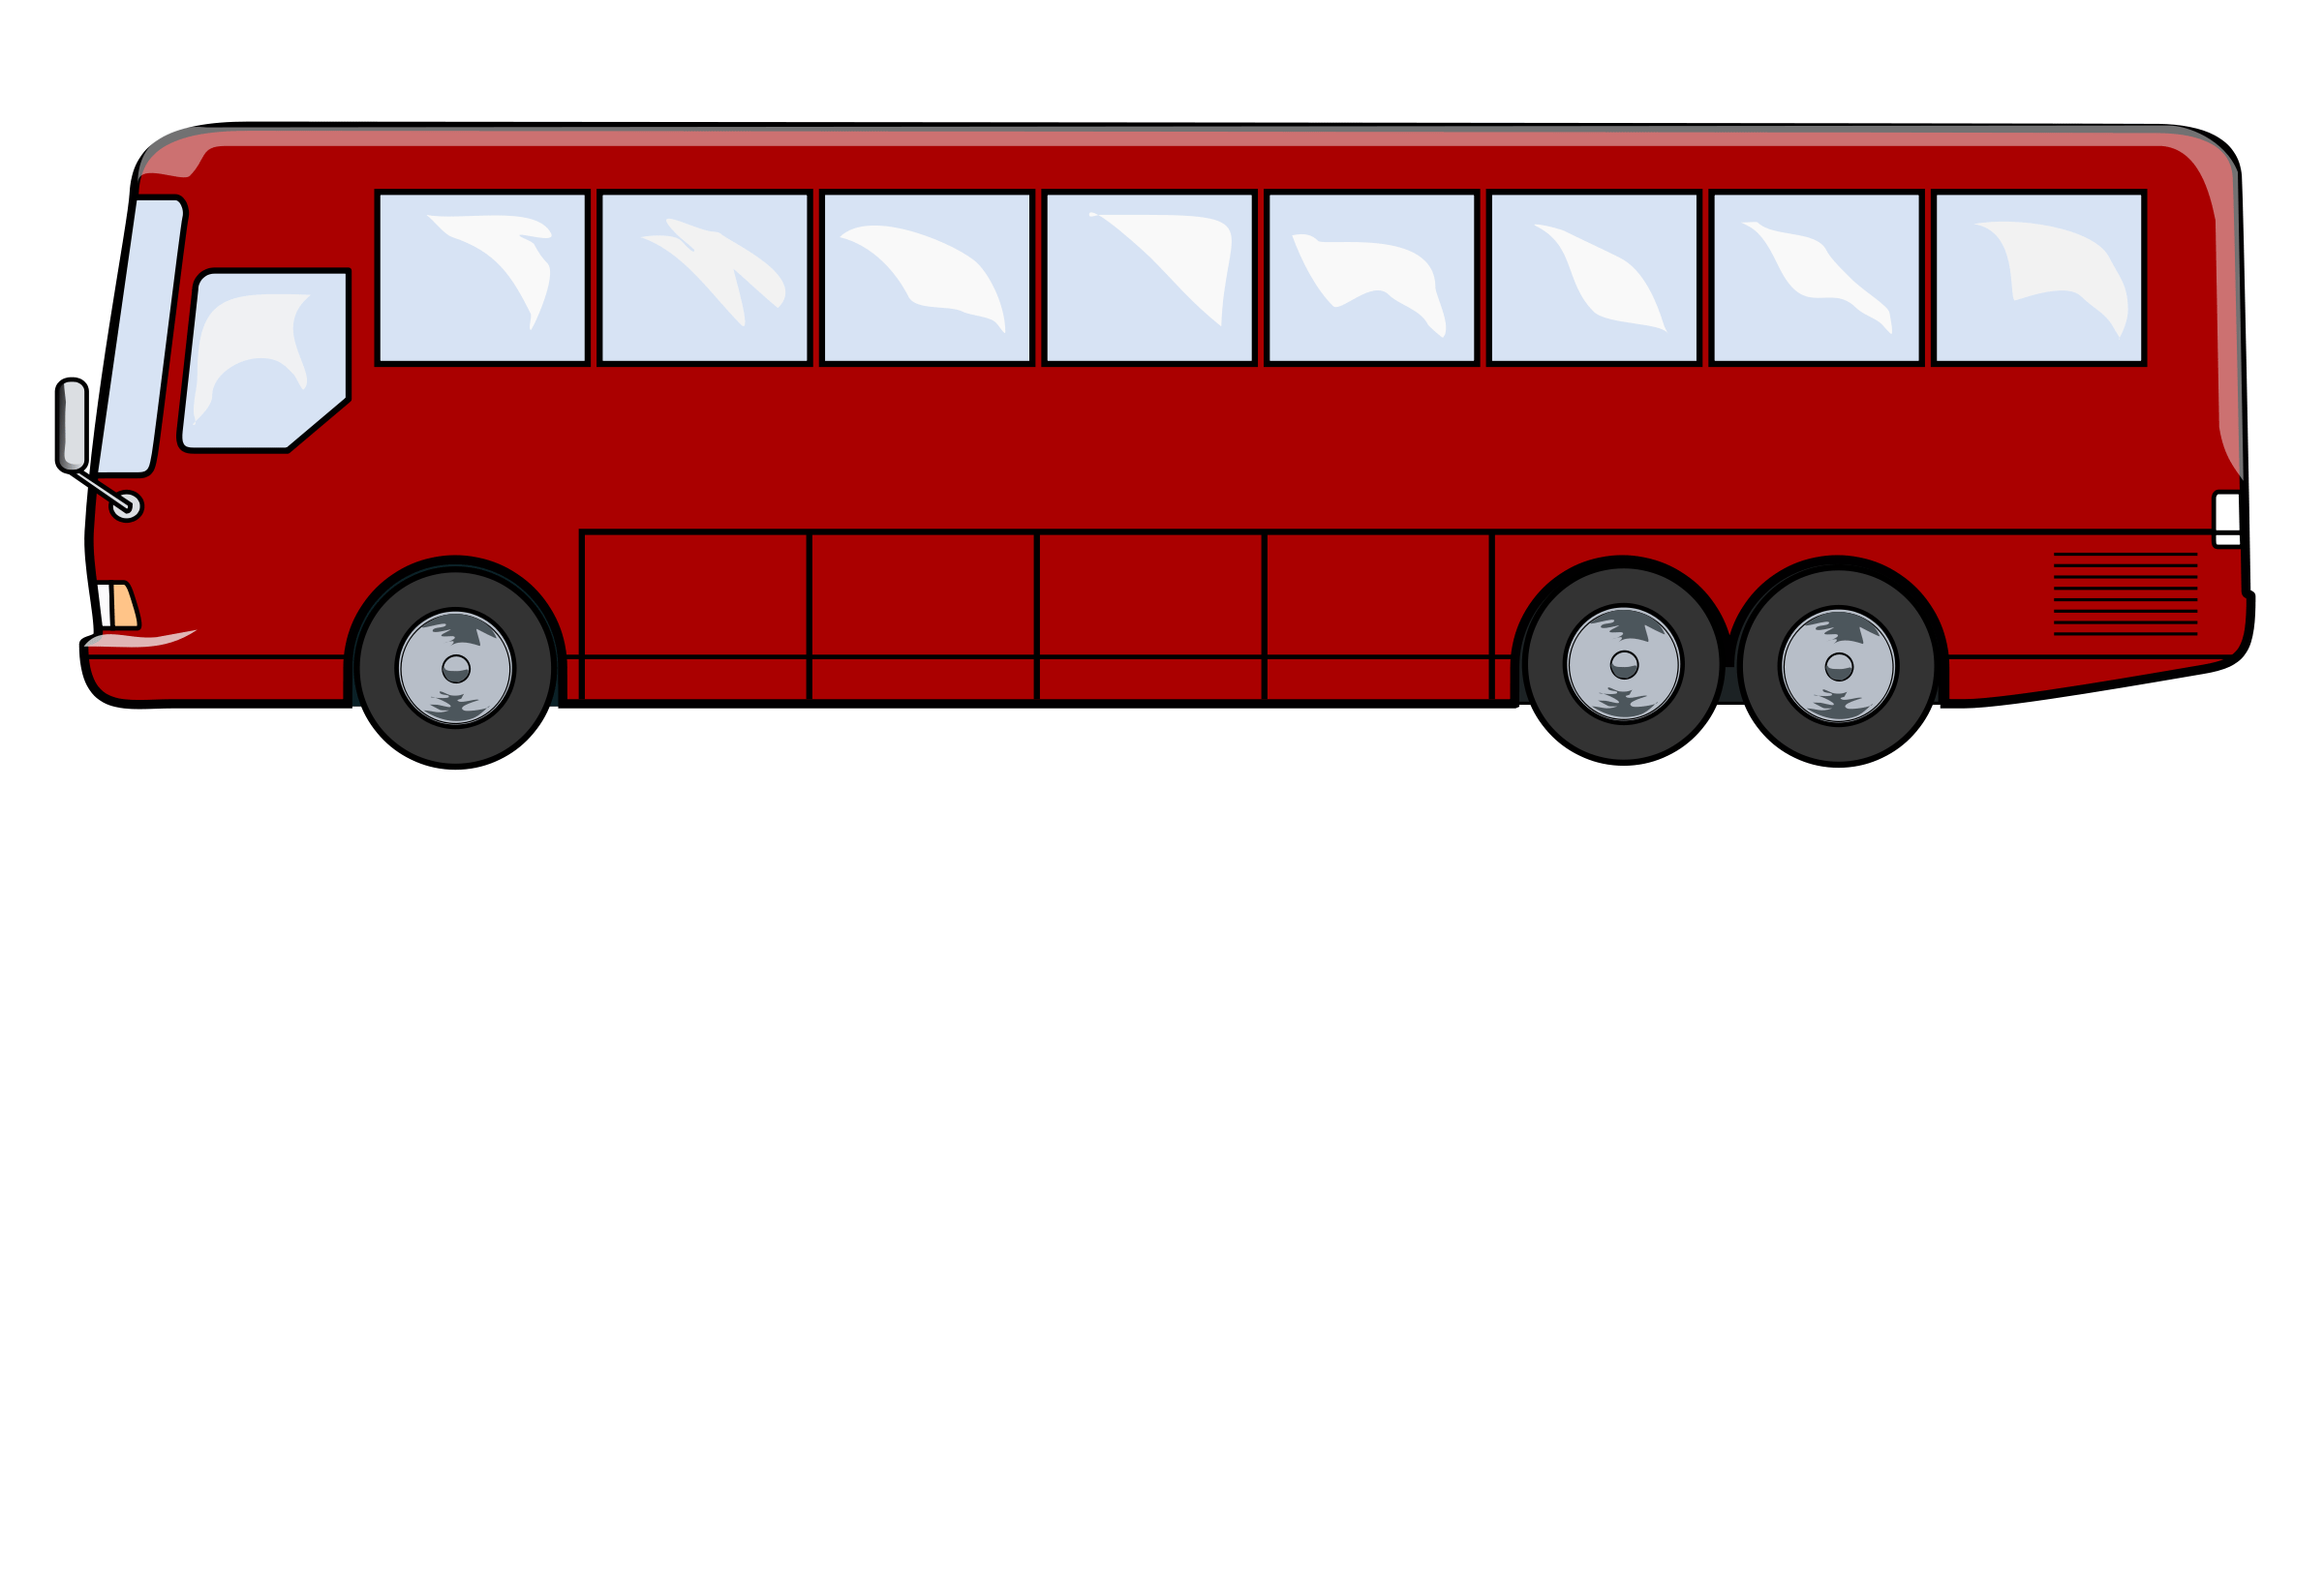 Download image See more images. Tags: Car side view - City Bus Side View PNG